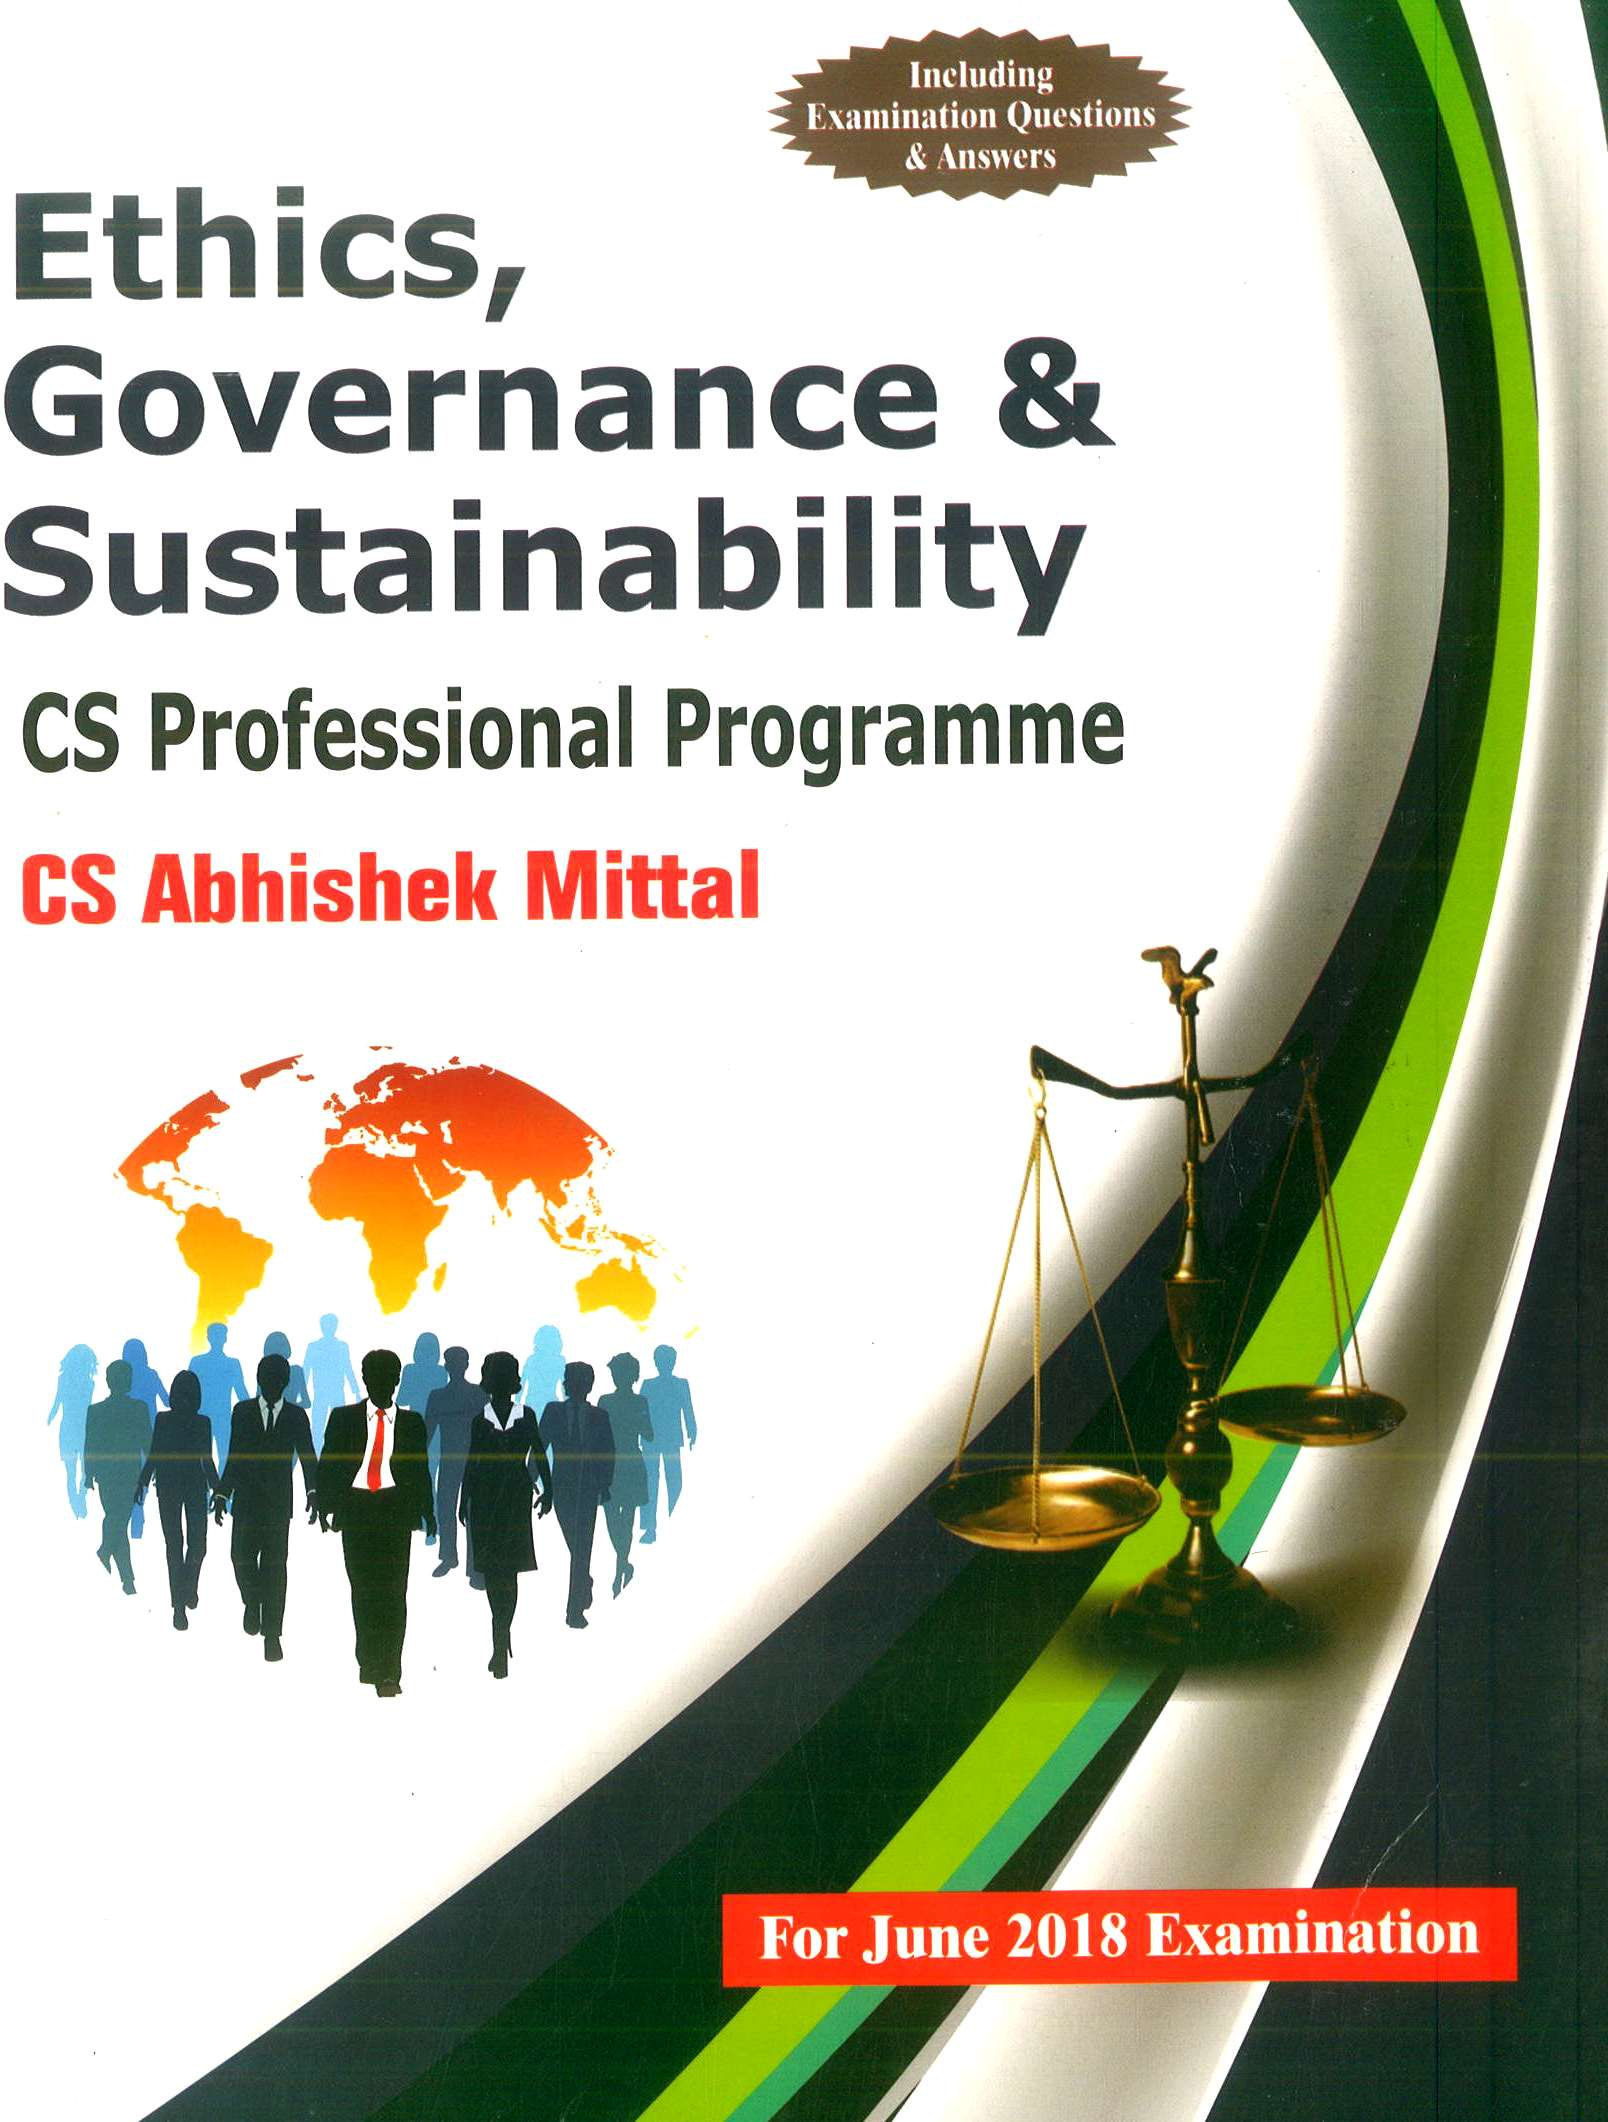 Sangeet Kedia CS Professional Programme (New Syllabus) Ethics, Governance and Sustainability by Abhishek Mittal Applicable for June 2018 Exam (Pooja Law House Publishing) Edition 16th, 2018